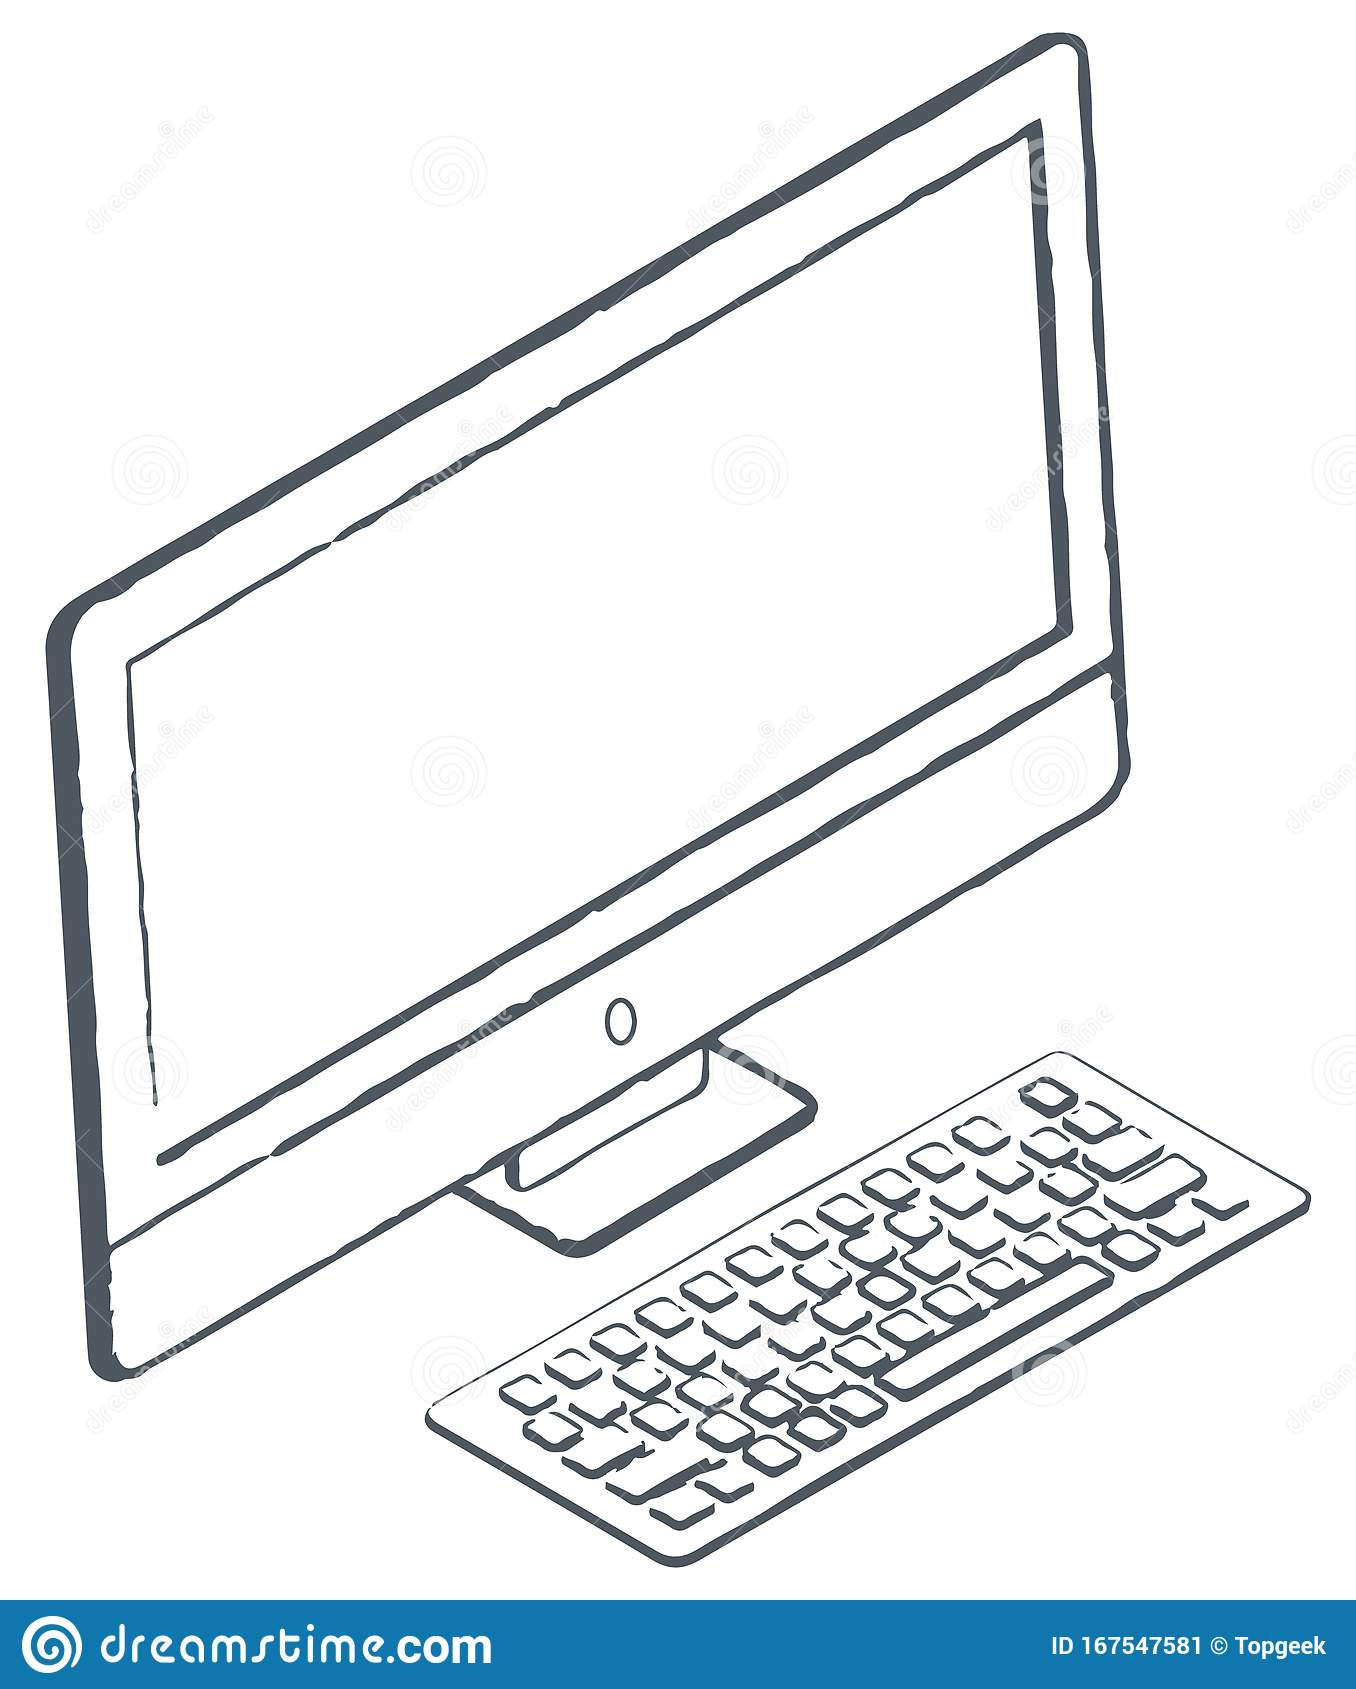 Personal Computer Sketch Monitor And Keyboard Stock Vector Illustration Of Concept Frame 167547581